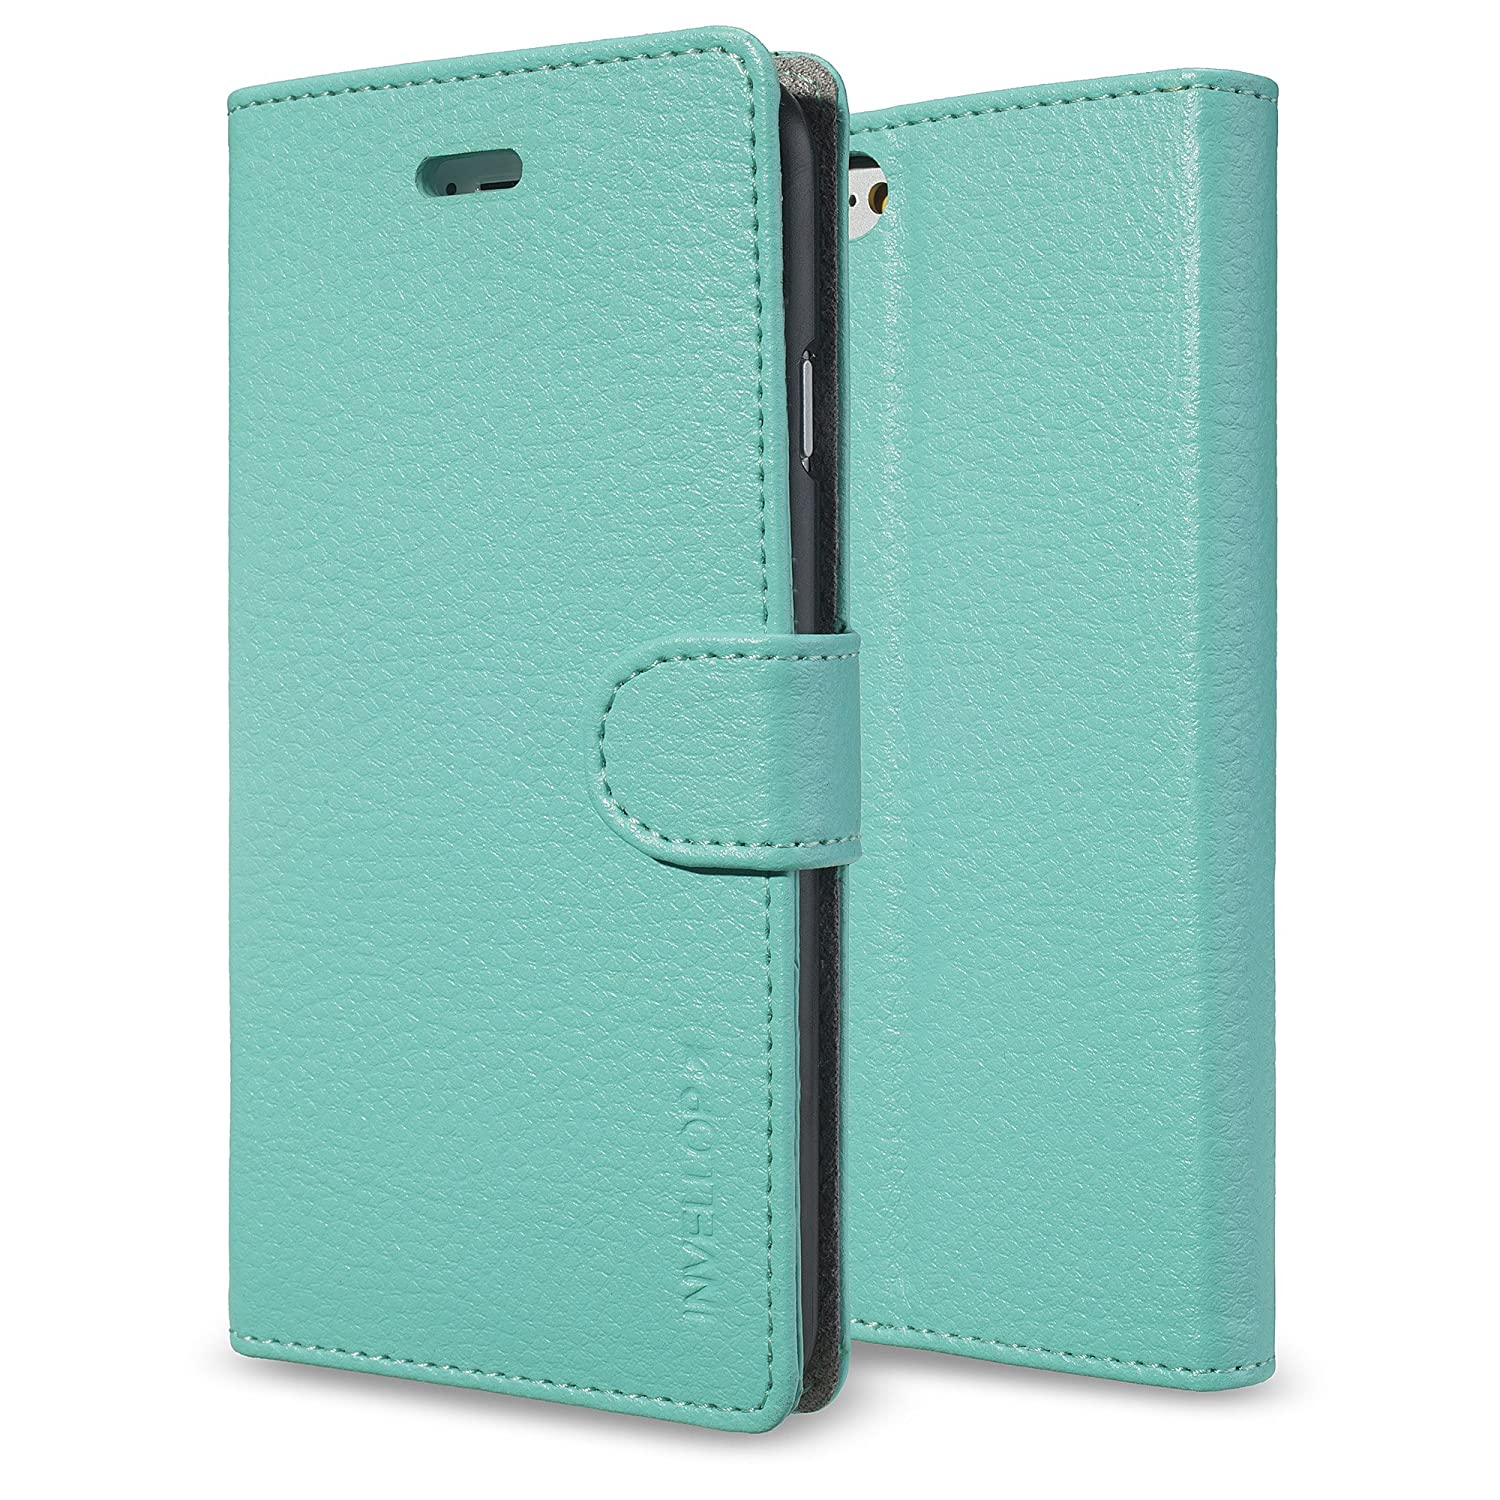 teal iphone 6 case